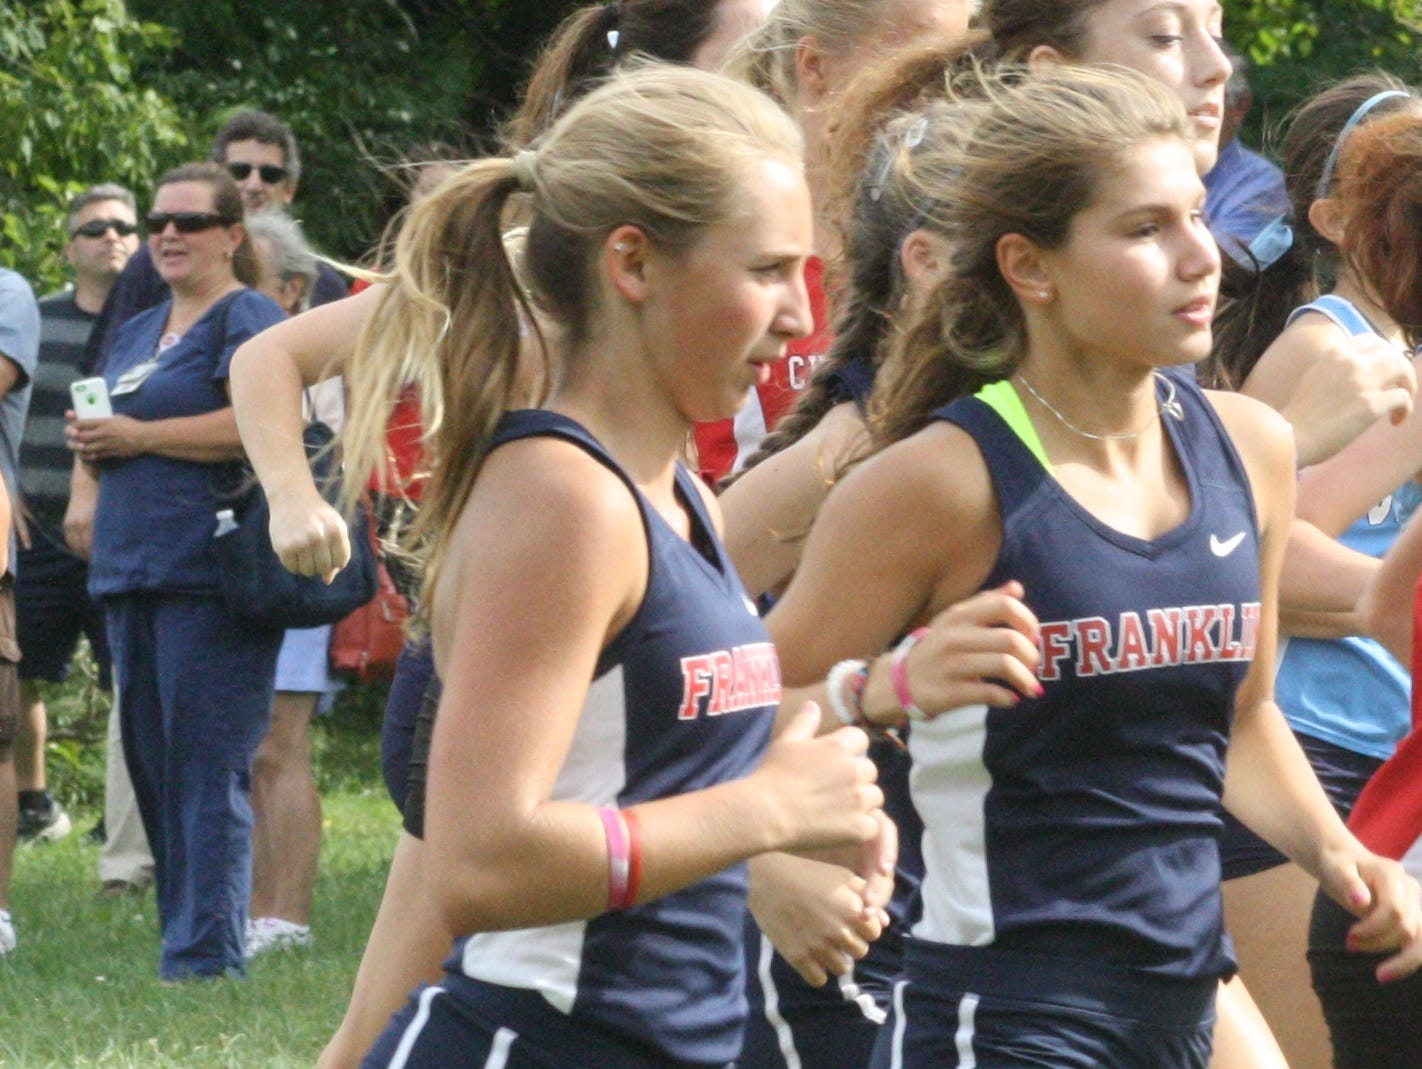 Franklin harriers Sam Mackiewicz (left) and Kaylee English (right) are pictured during a meet earlier this season.